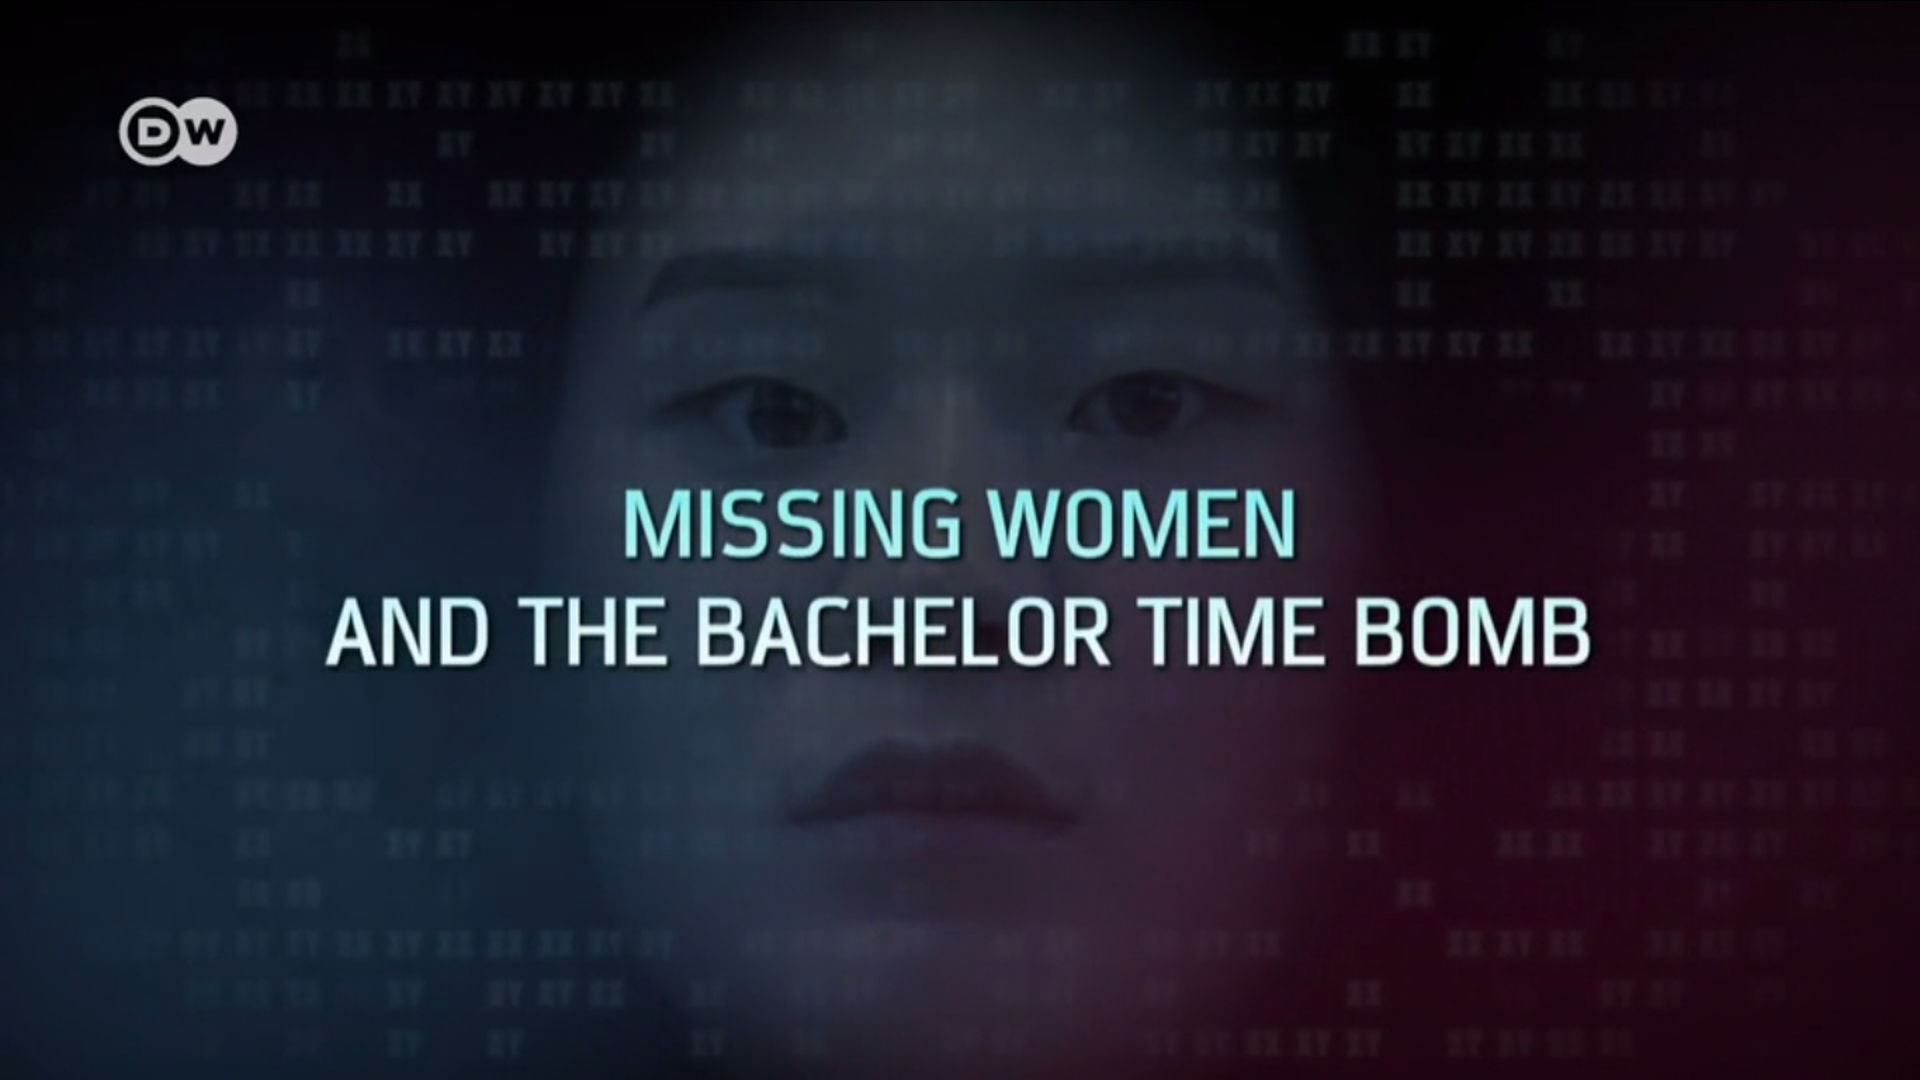 Watch Full Movie - Missing Women And The Bachelor Time Bomb